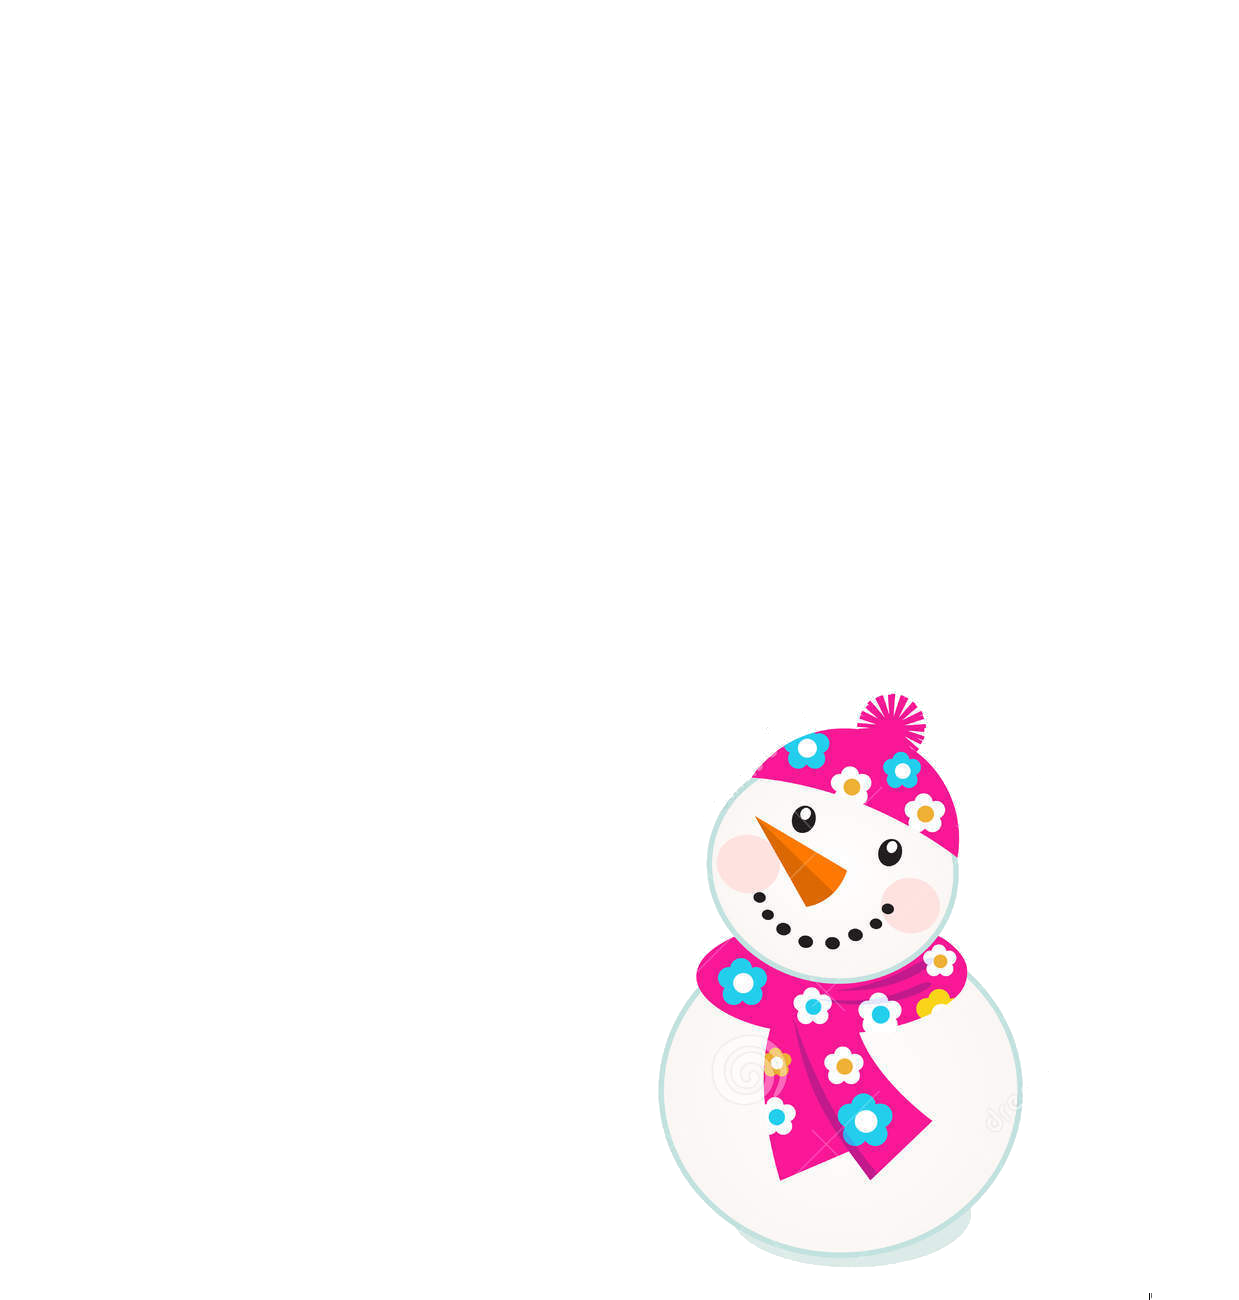 Vector snowman. Cute colorful snowmen para